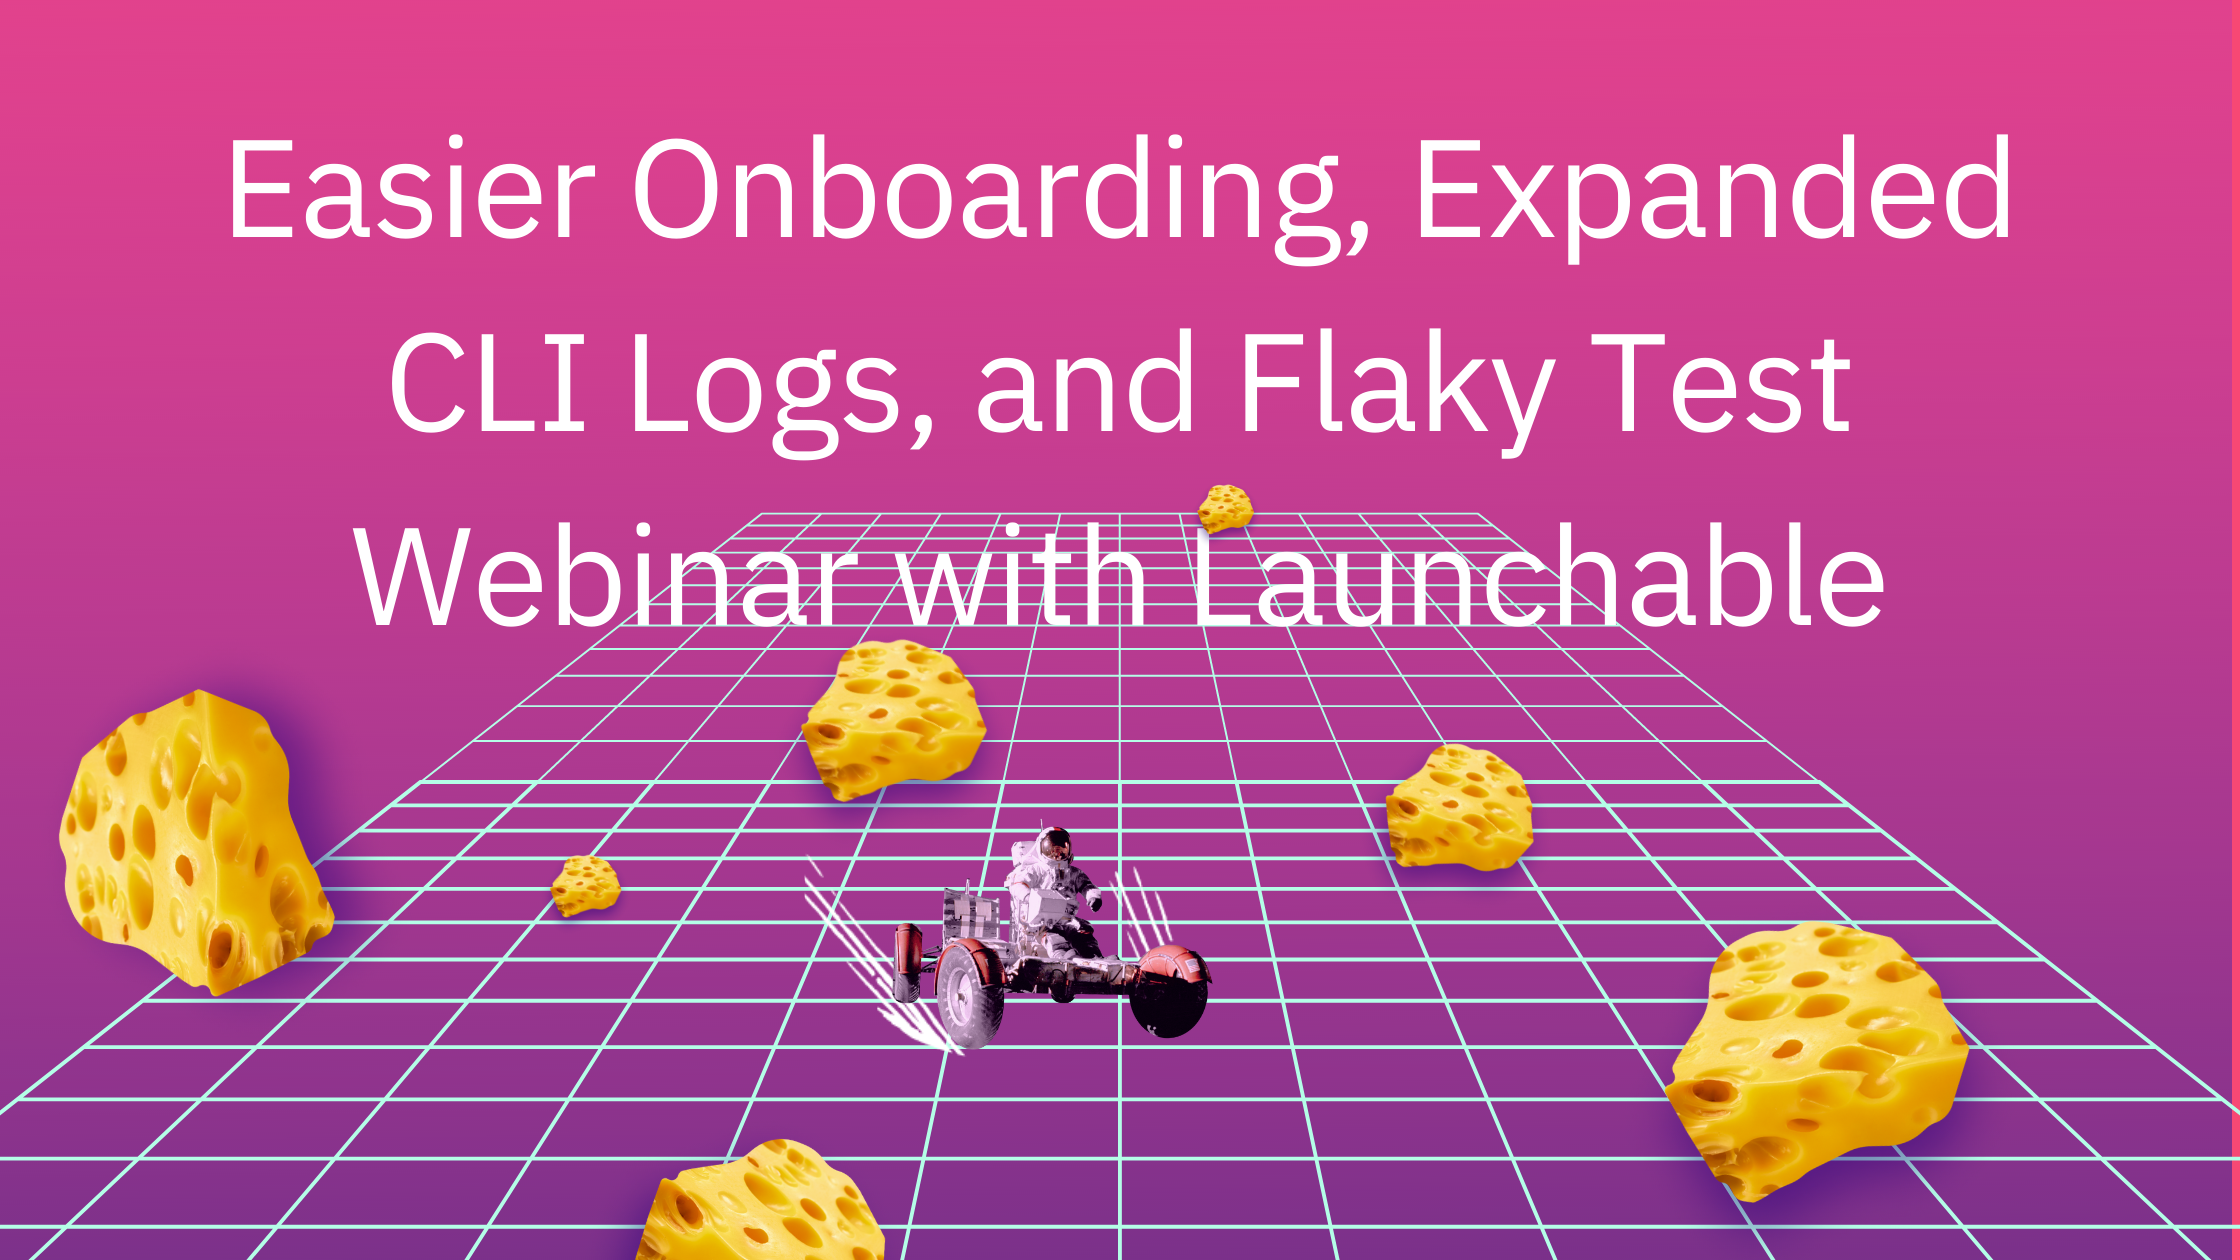 Easier Onboarding, Expanded CLI Logs, and Flaky Test Webinar with Launchable